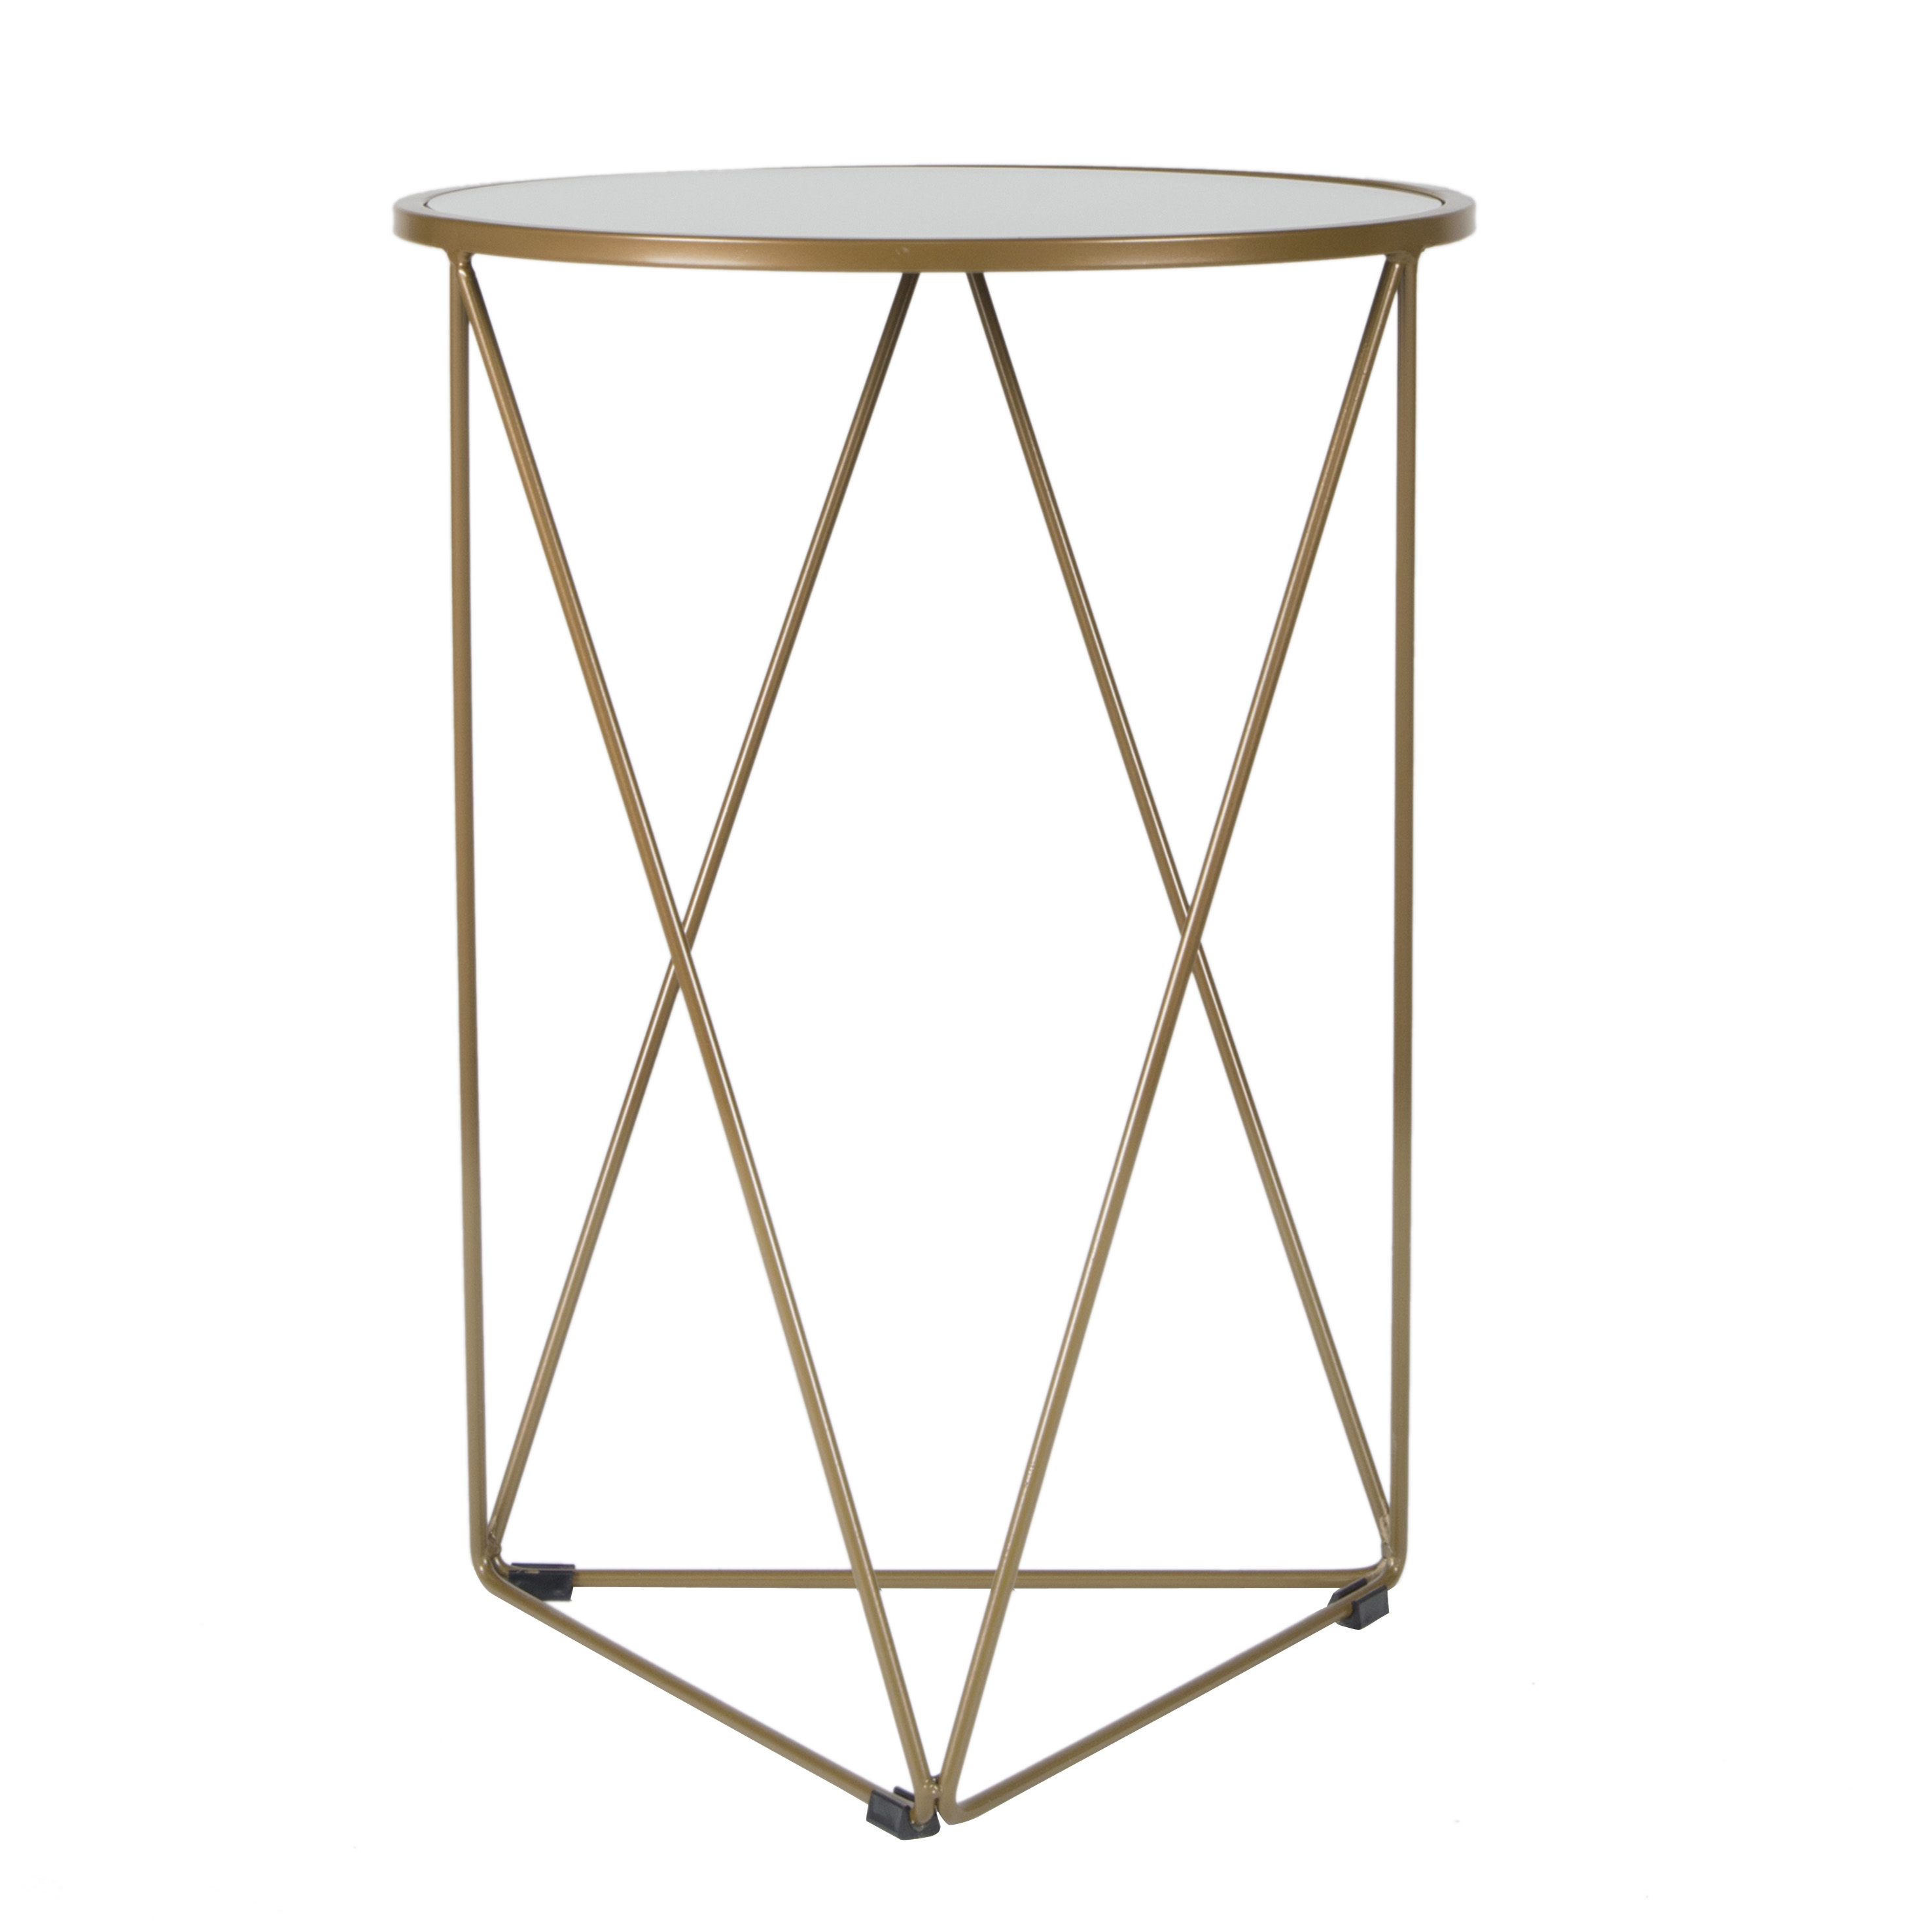 homepop metal accent table with glass top gold round legs wood ceramic ginger jar lamps centerpiece ideas for home cube tables ikea walnut side teal kitchen accents hairpin cool